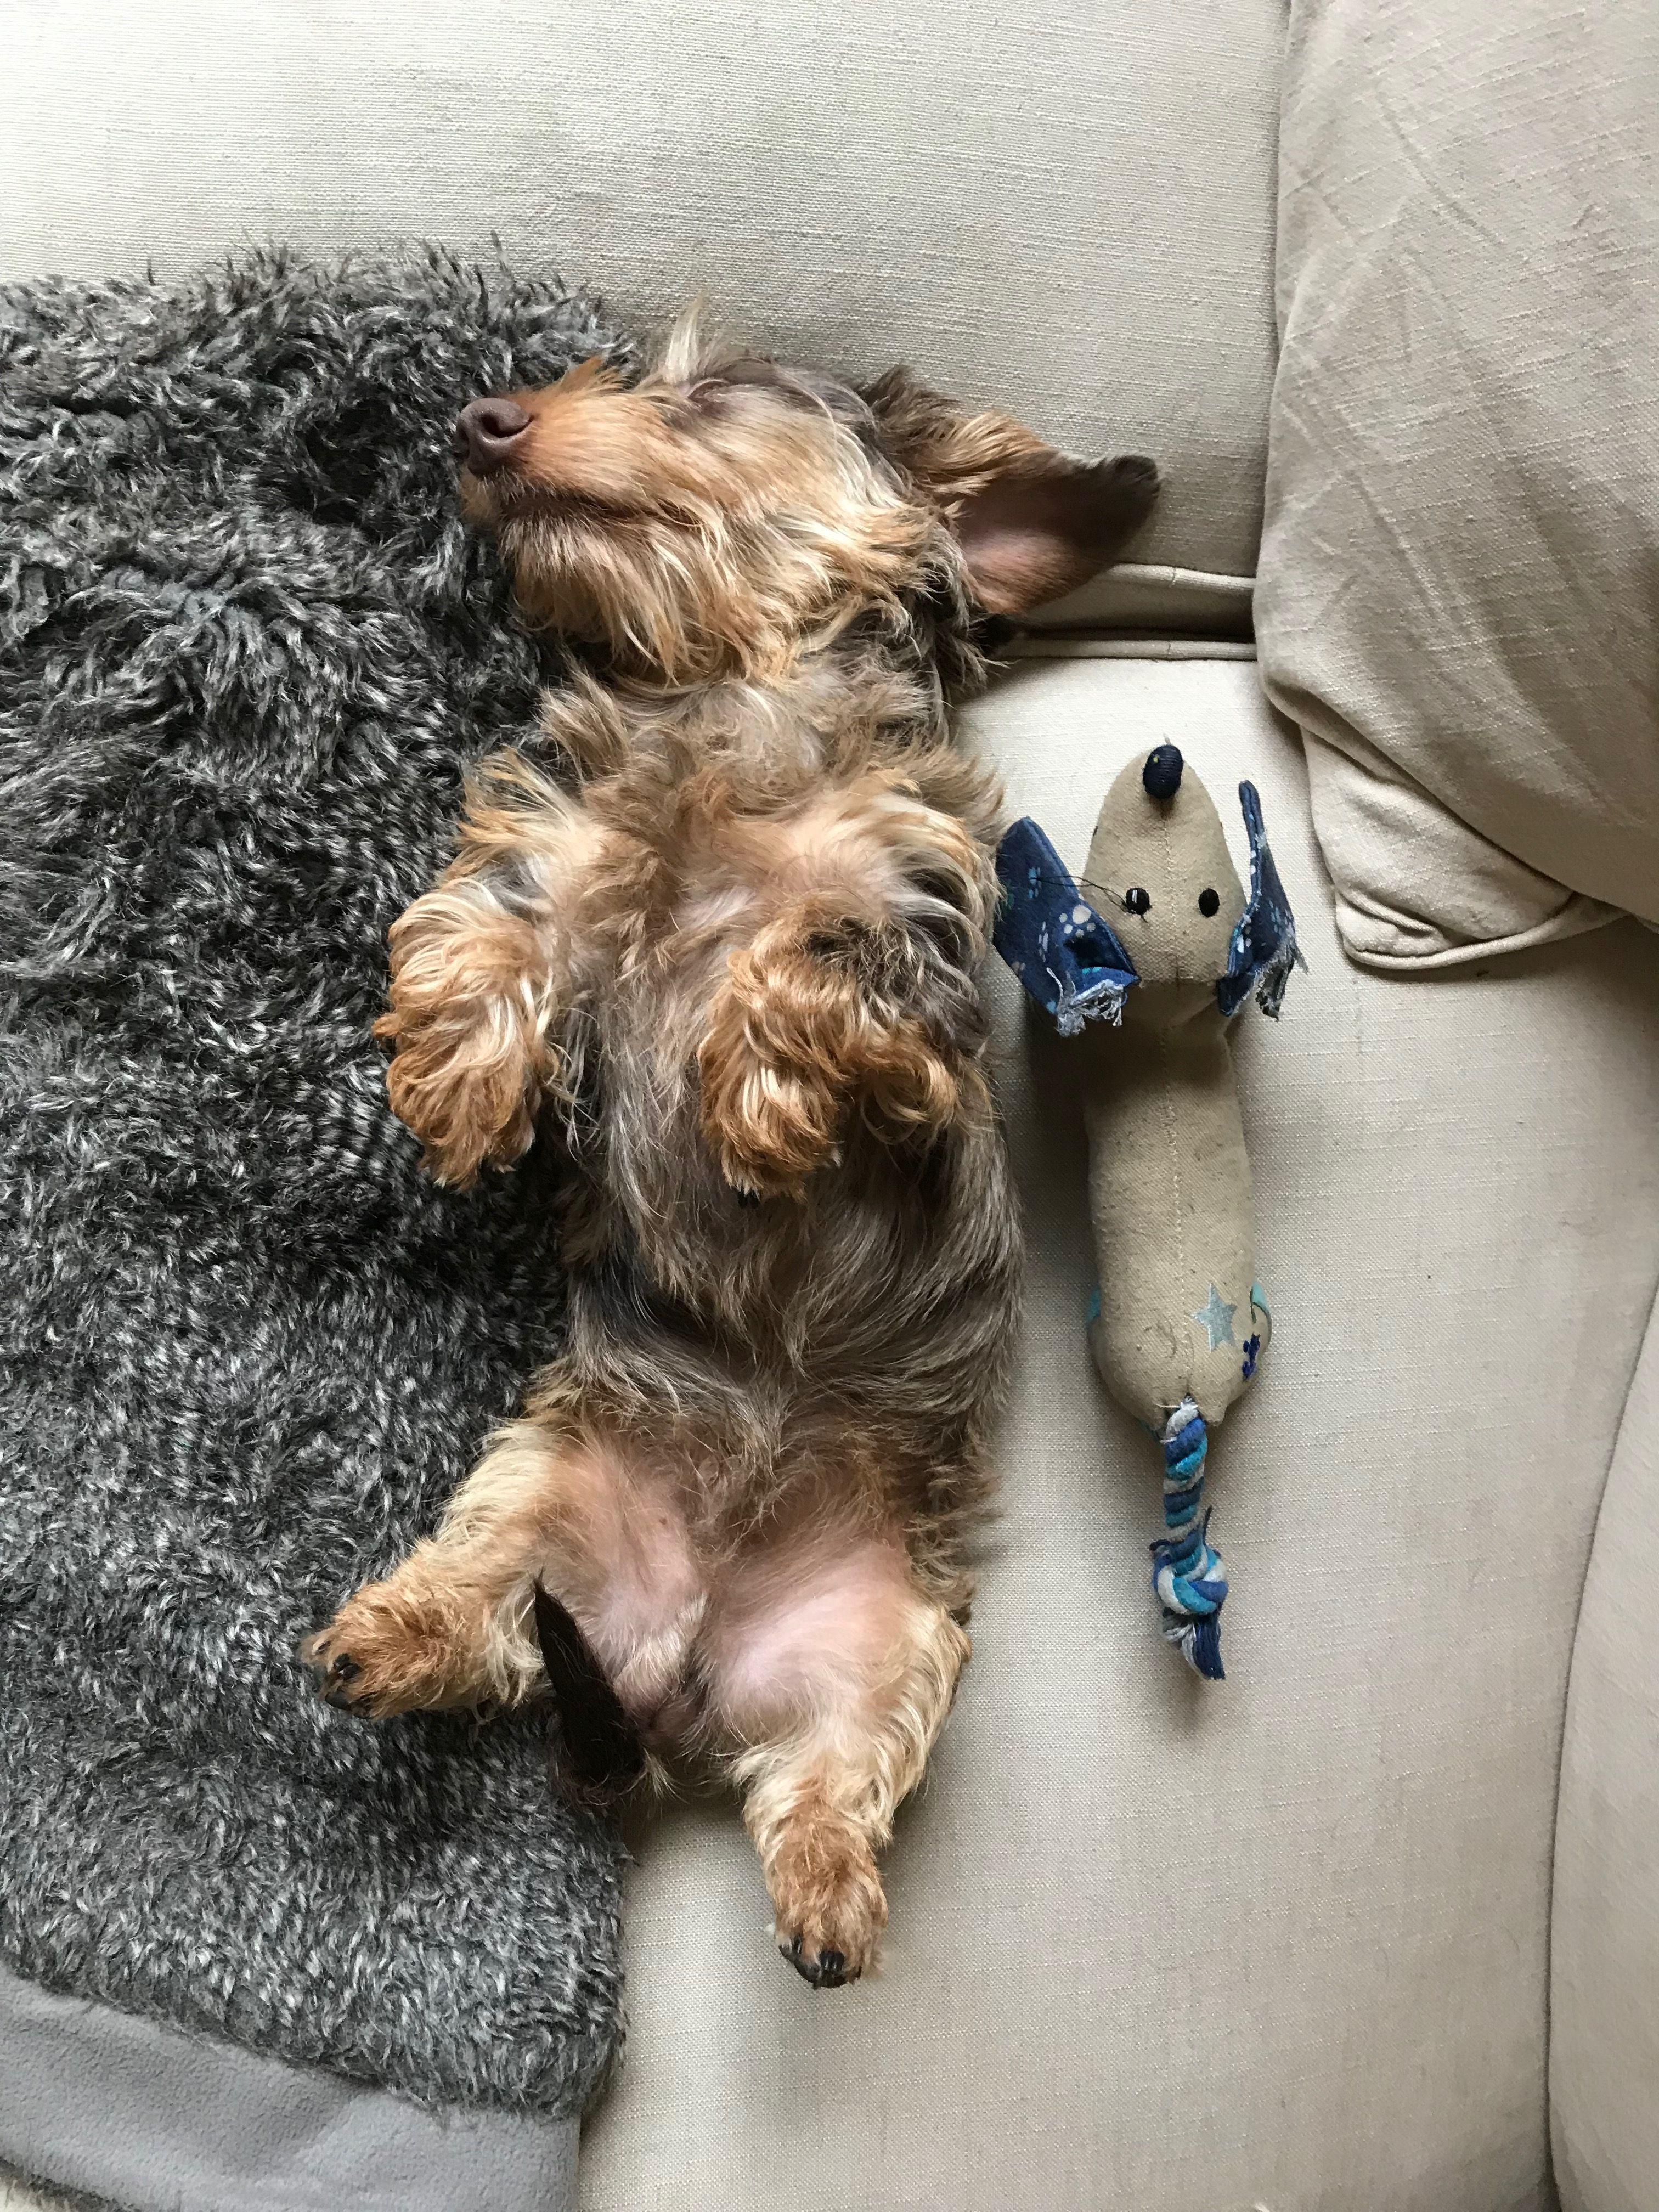 Precious Doxie And Her Stuffed Baby Dachshund Wire Haired Dachshund Dachshund Dog Dachshund Love